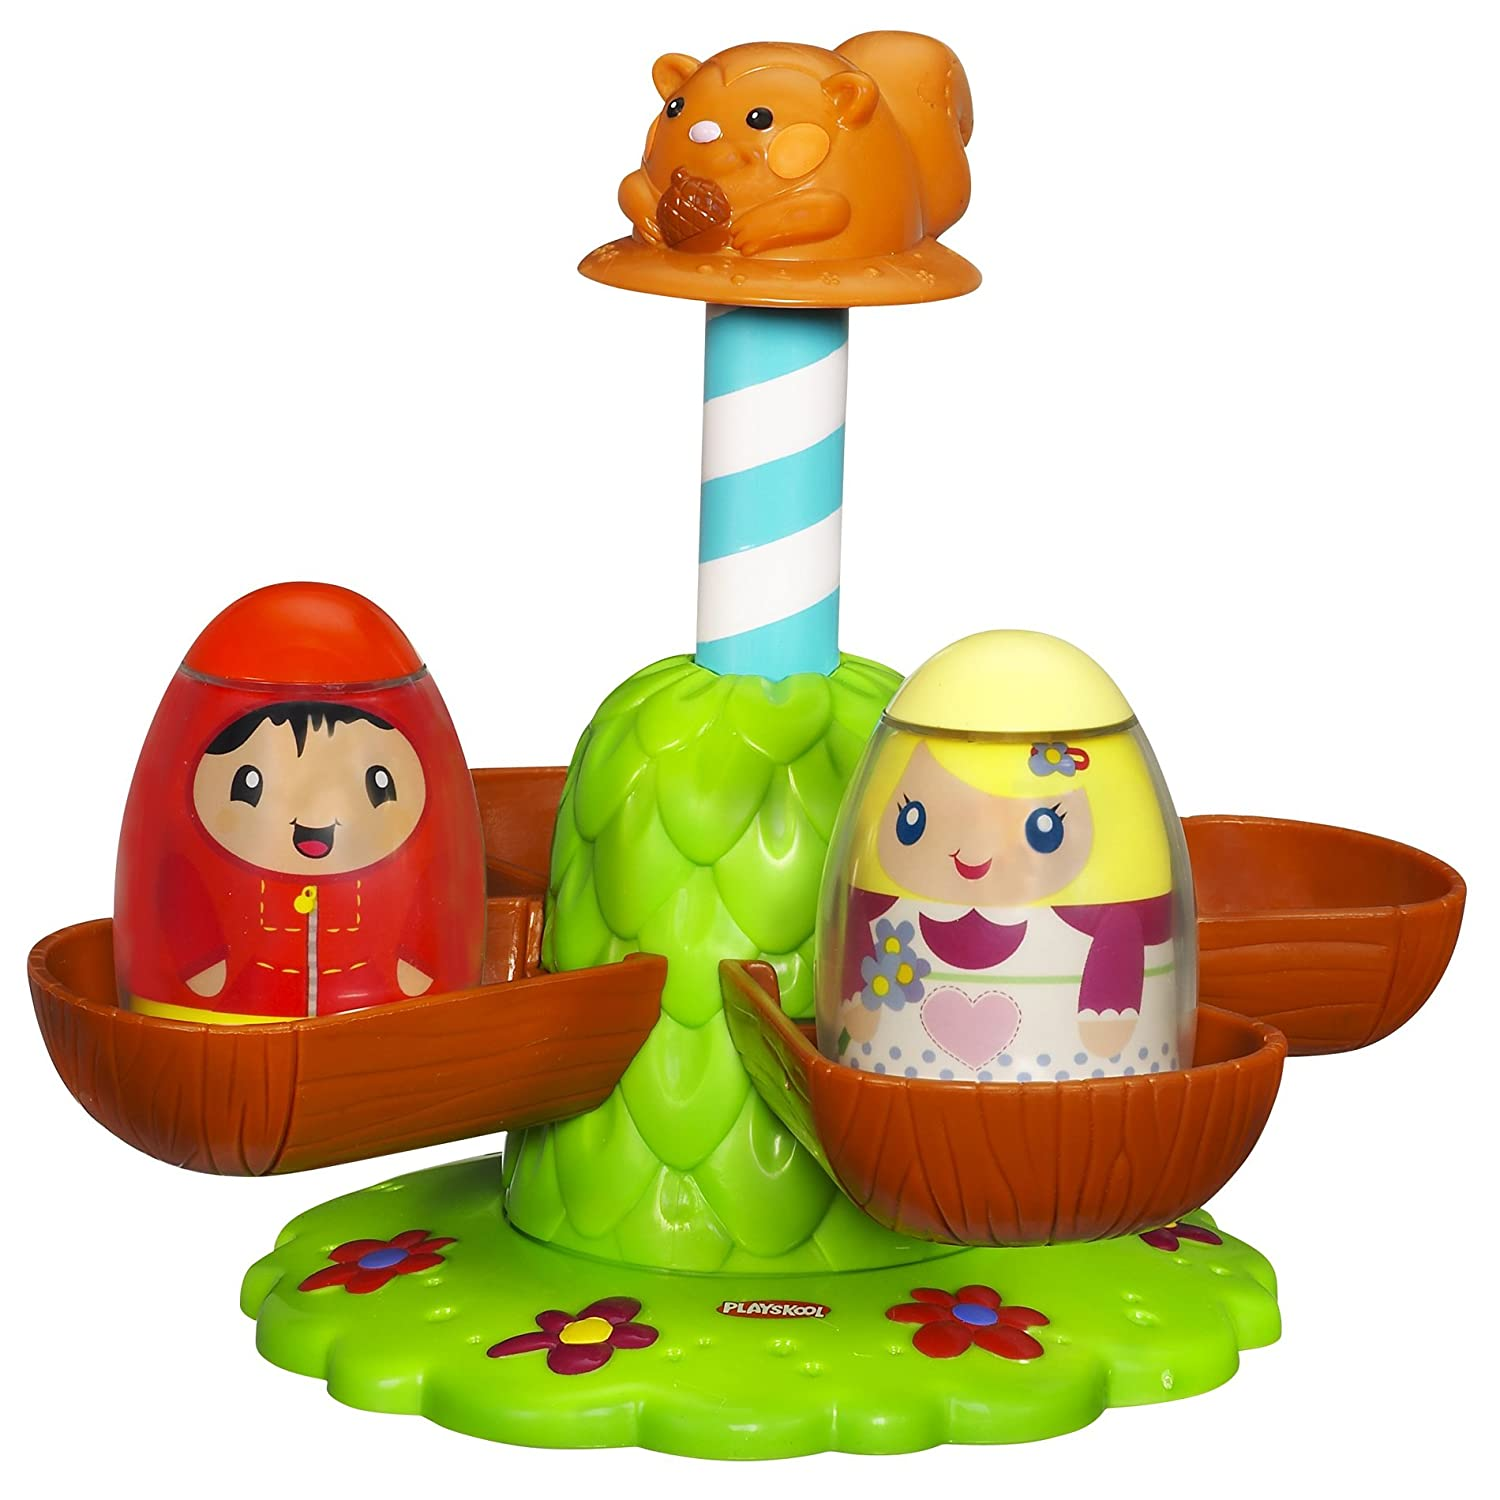 Playskool Weebles Musical Treehouse Part - 26: Amazon.com